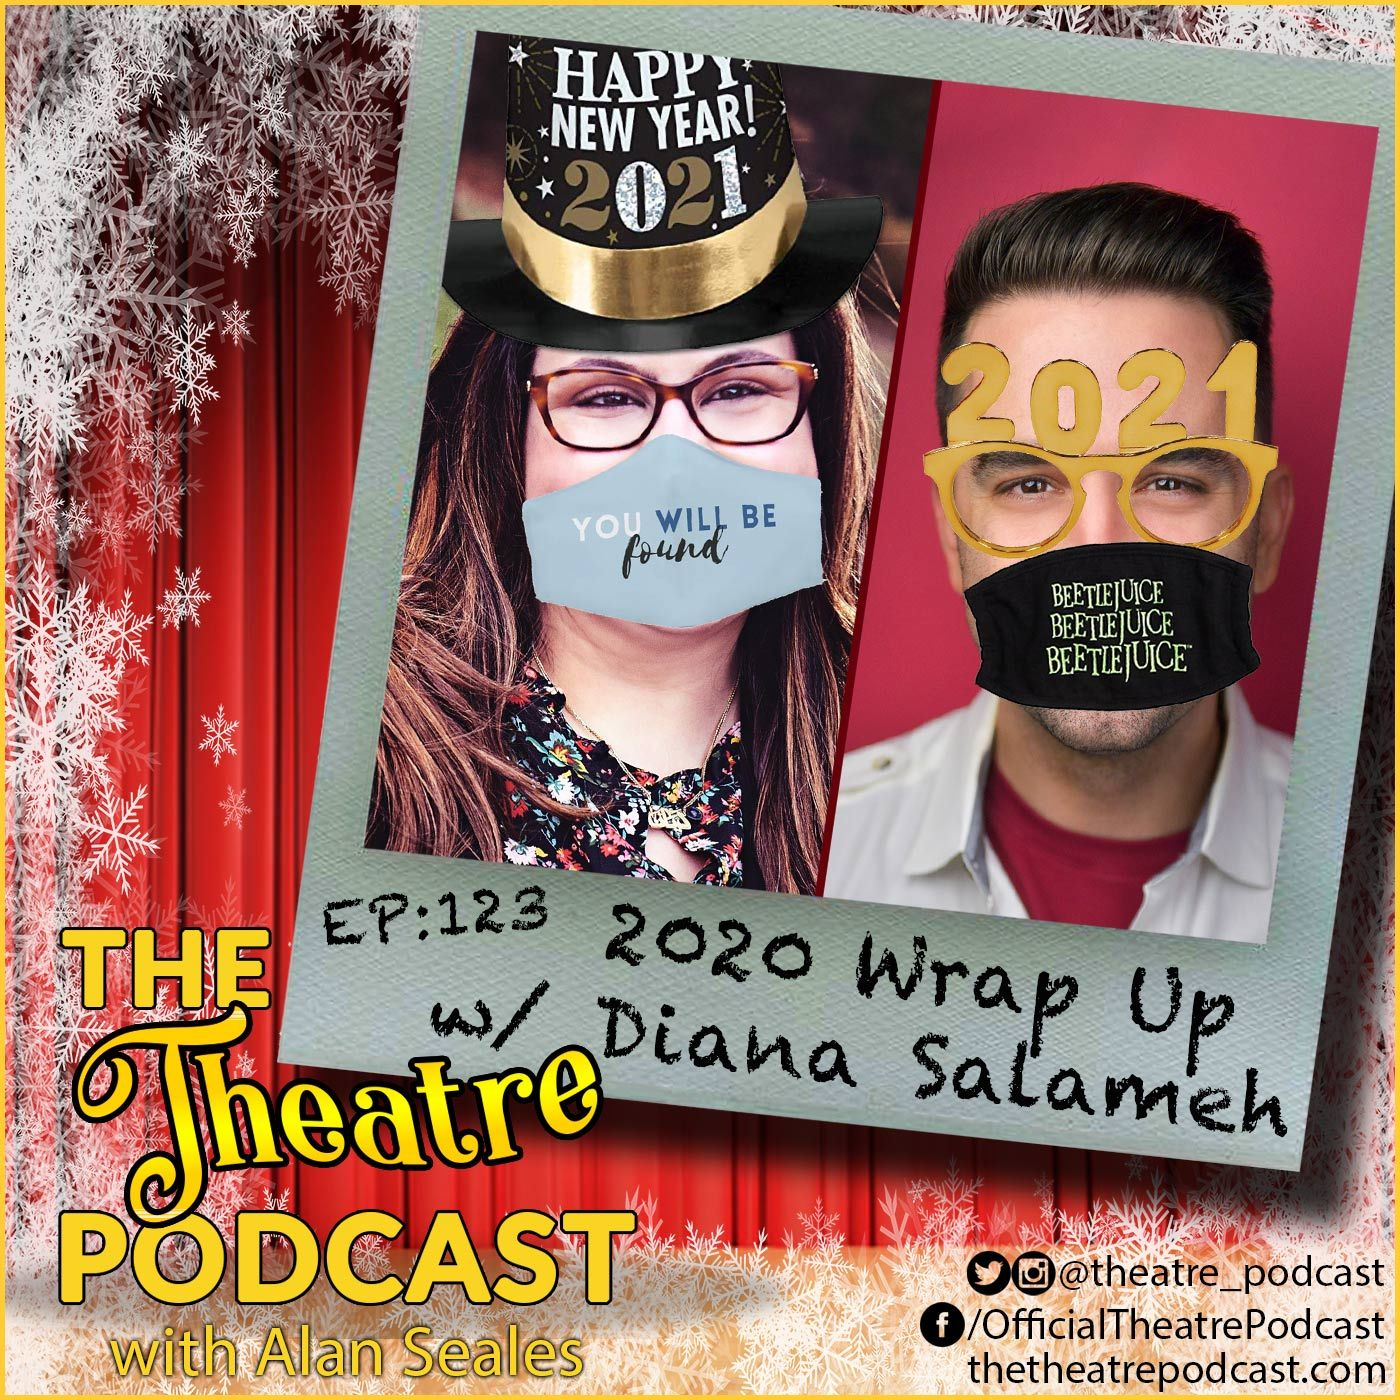 Ep123 - 2020 {C,W}rap up with Alan Seales and Diana Salameh